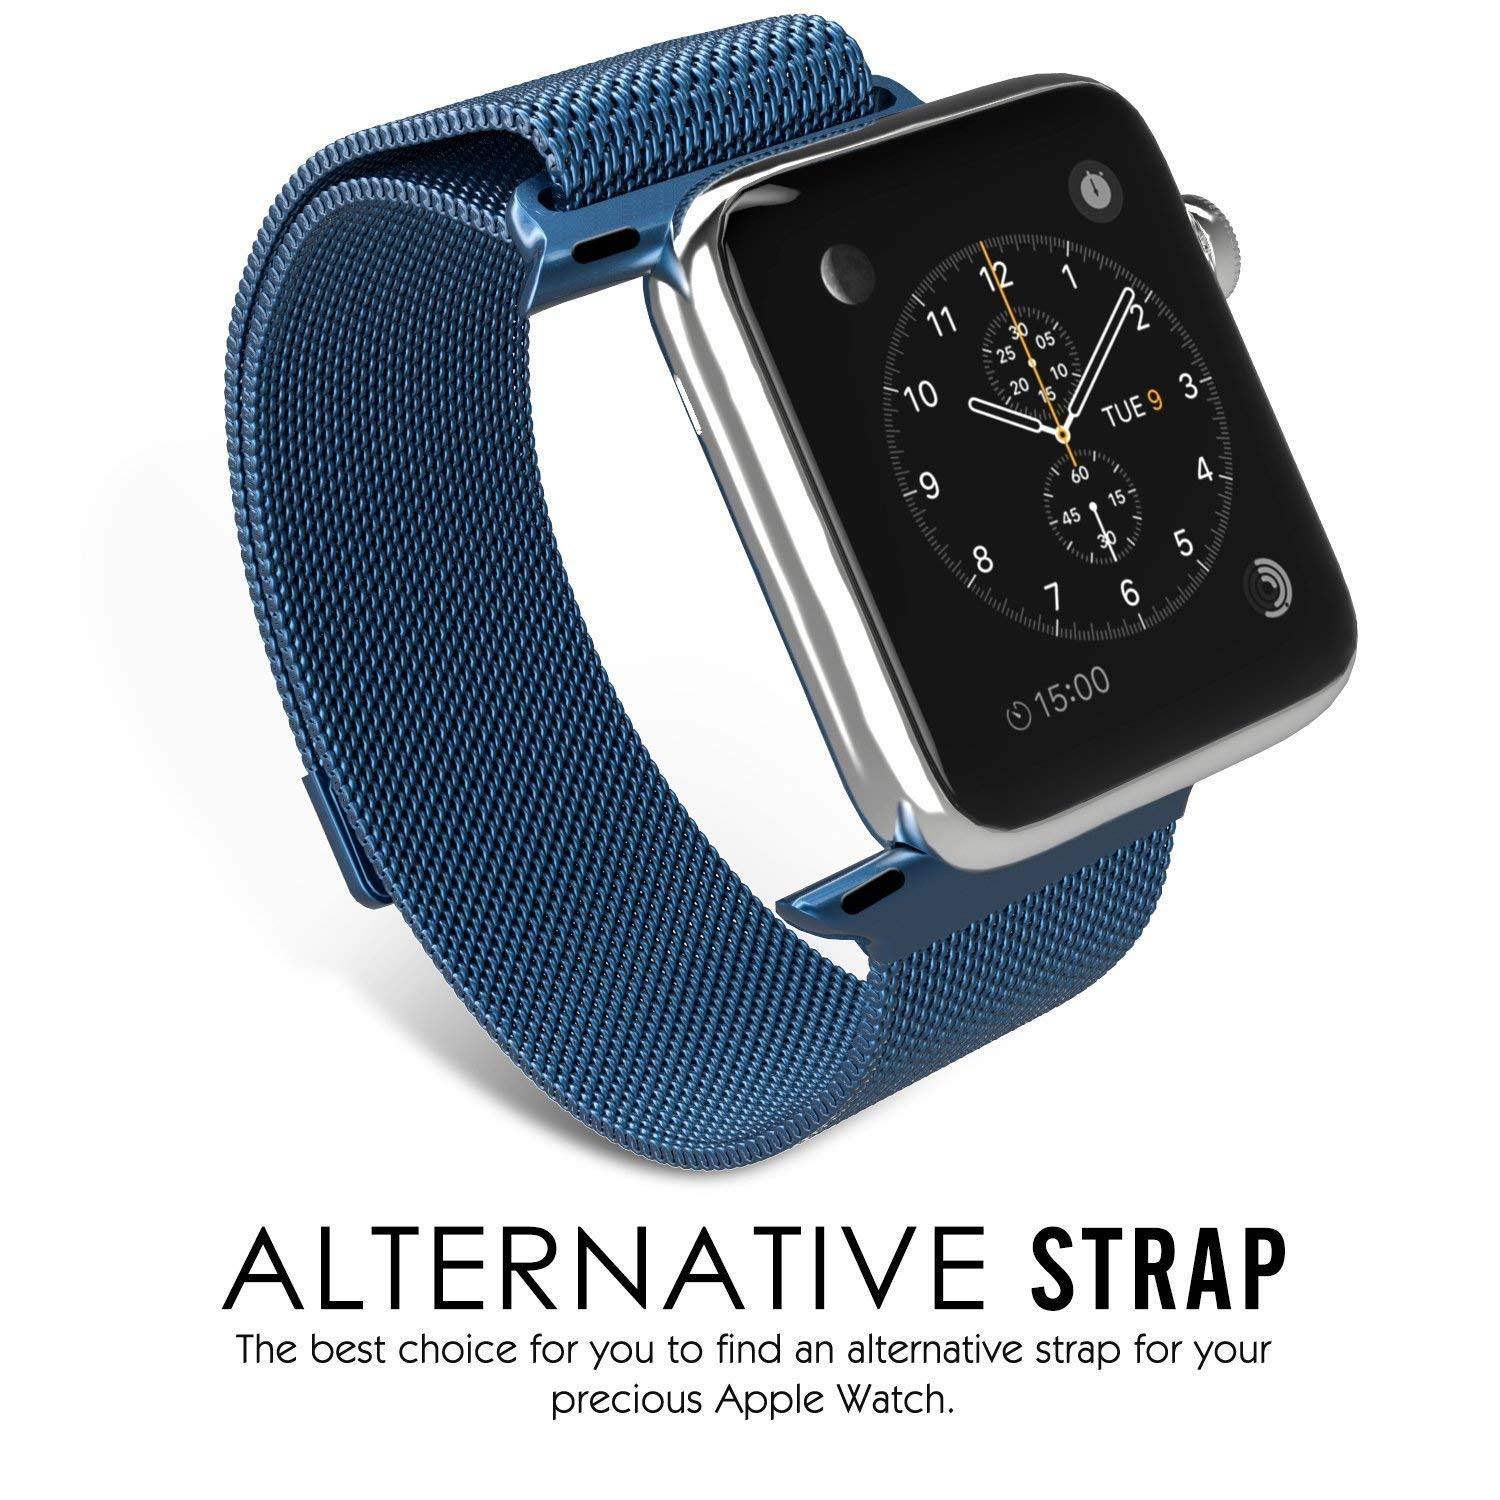 Stainless Steel Metal Band Strap Replacement For NEW Apple Watch Series 4 40mm Jewelry & Watches